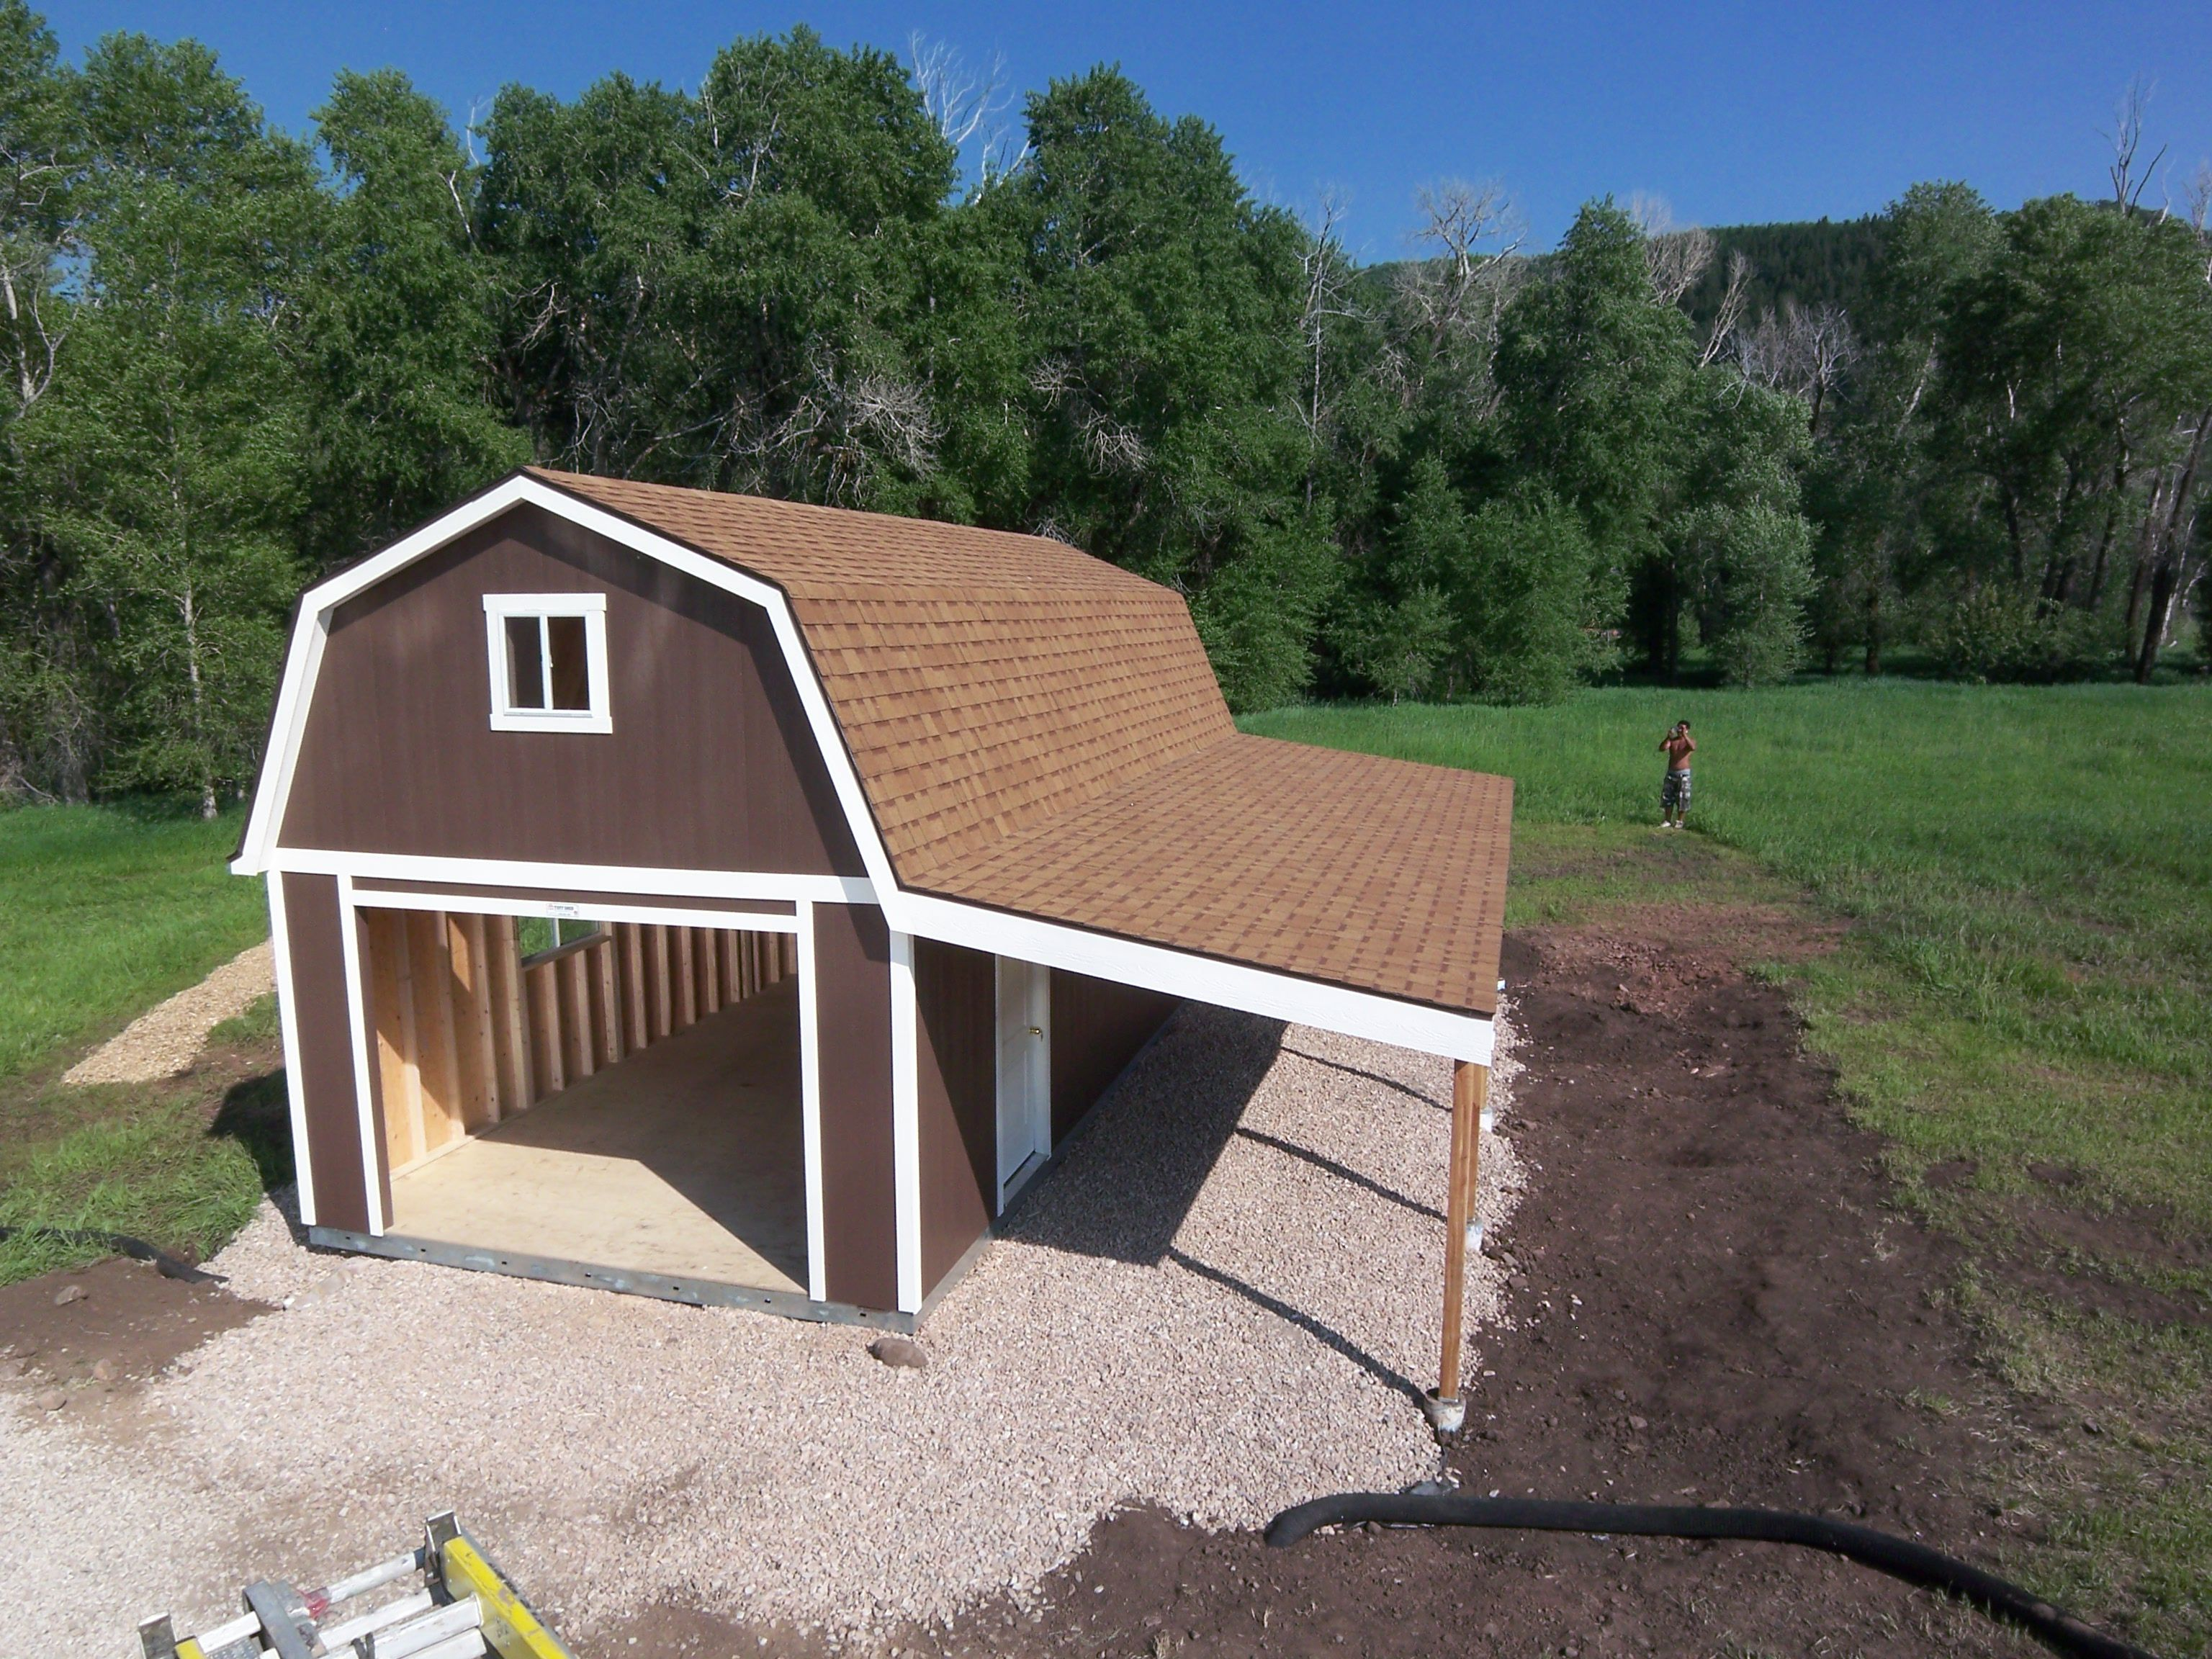 Storage Shed Construction Tuff shed, Building a shed